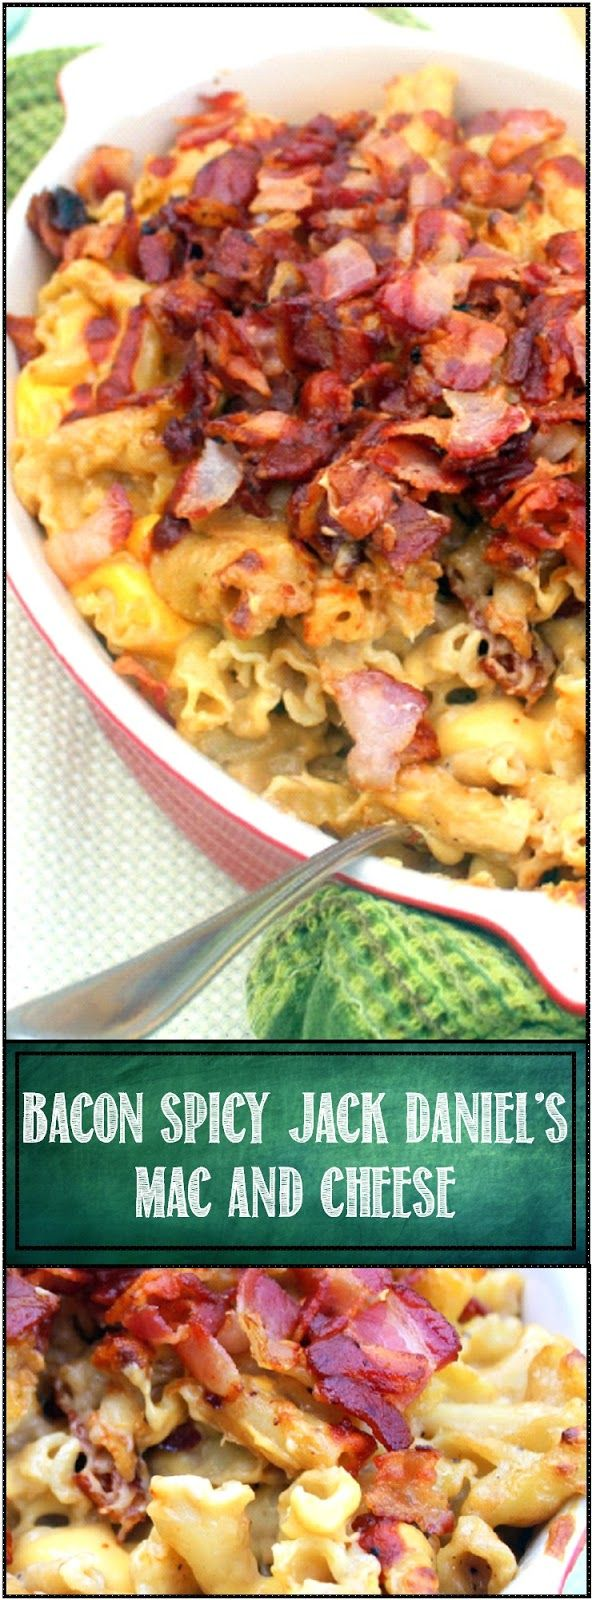 BACON BACON BACON Spicy Jack Daniel's Mac and Cheese - 52 Church PotLuck Side Dish... LOADED with Bacon and seasoned with Jack Daniel's Whiskey. Now this is a grown up Macaroni and Cheese recipe that makes your table sing!!!